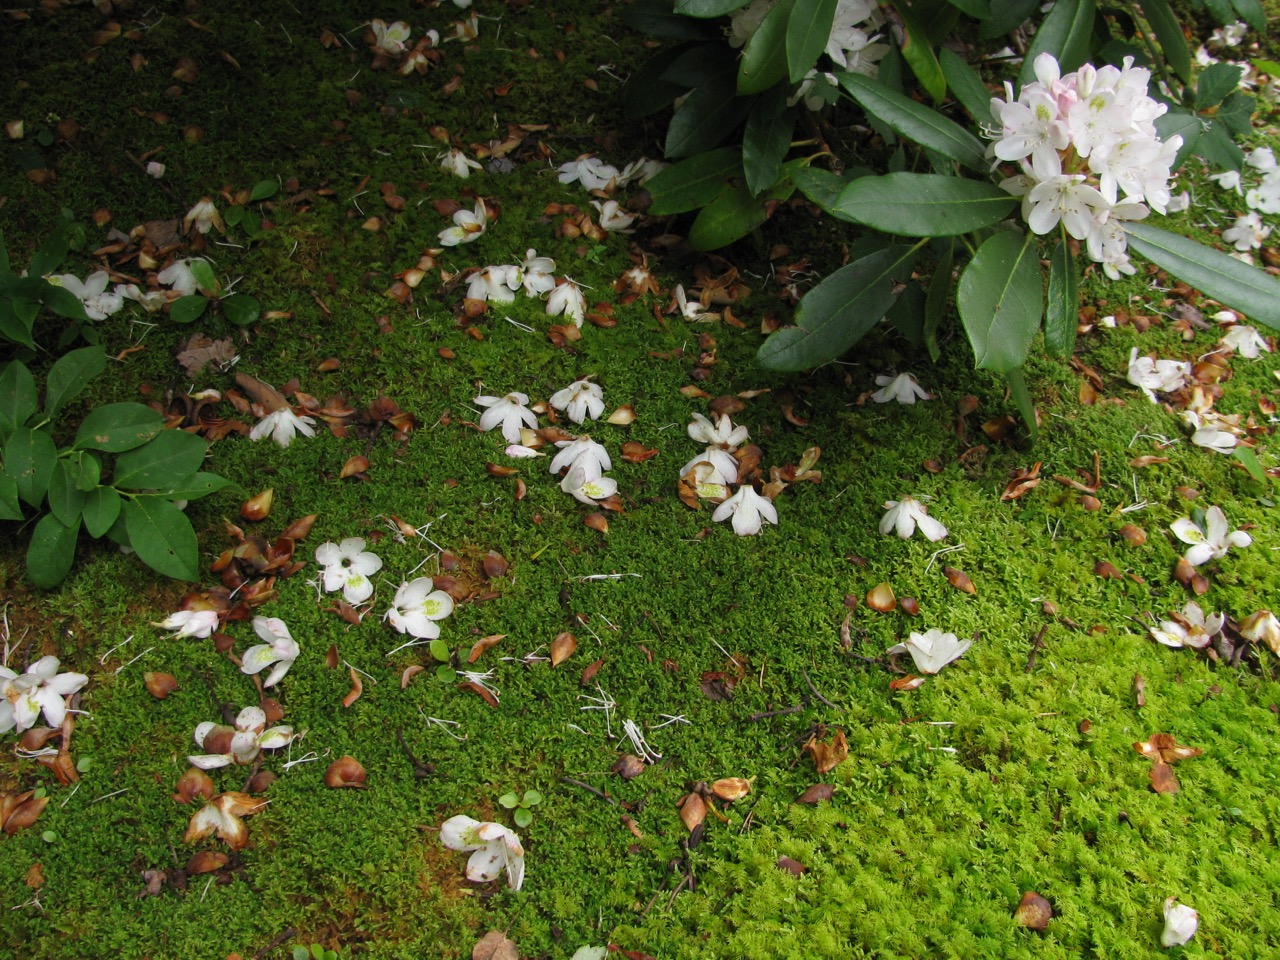 The Scientific Name is Rhododendron maximum. You will likely hear them called Great Rhododendron, Rosebay Rhododendron. This picture shows the Spent flowers on the forest floor of Rhododendron maximum